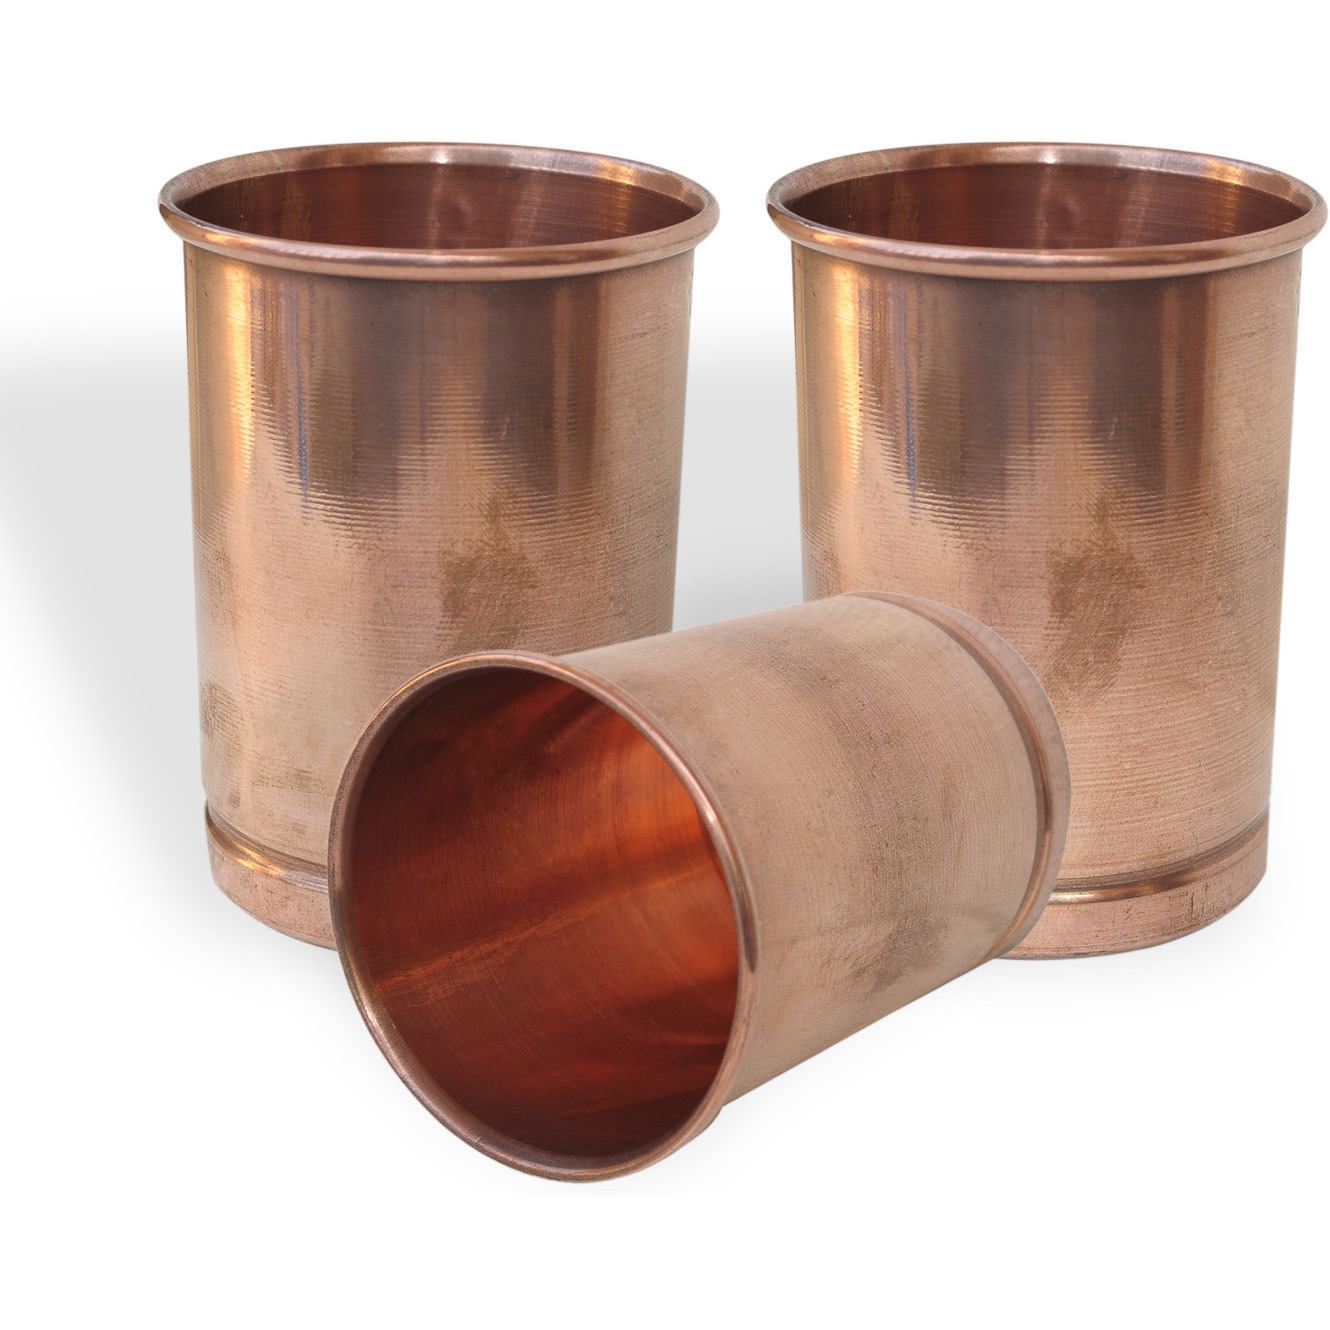 Set of 3 - Prisha India Craft B. Pure Copper Glass Cup for Water - Handmade Water Glasses - Traveller's Copper Mug for Ayurveda Benefits